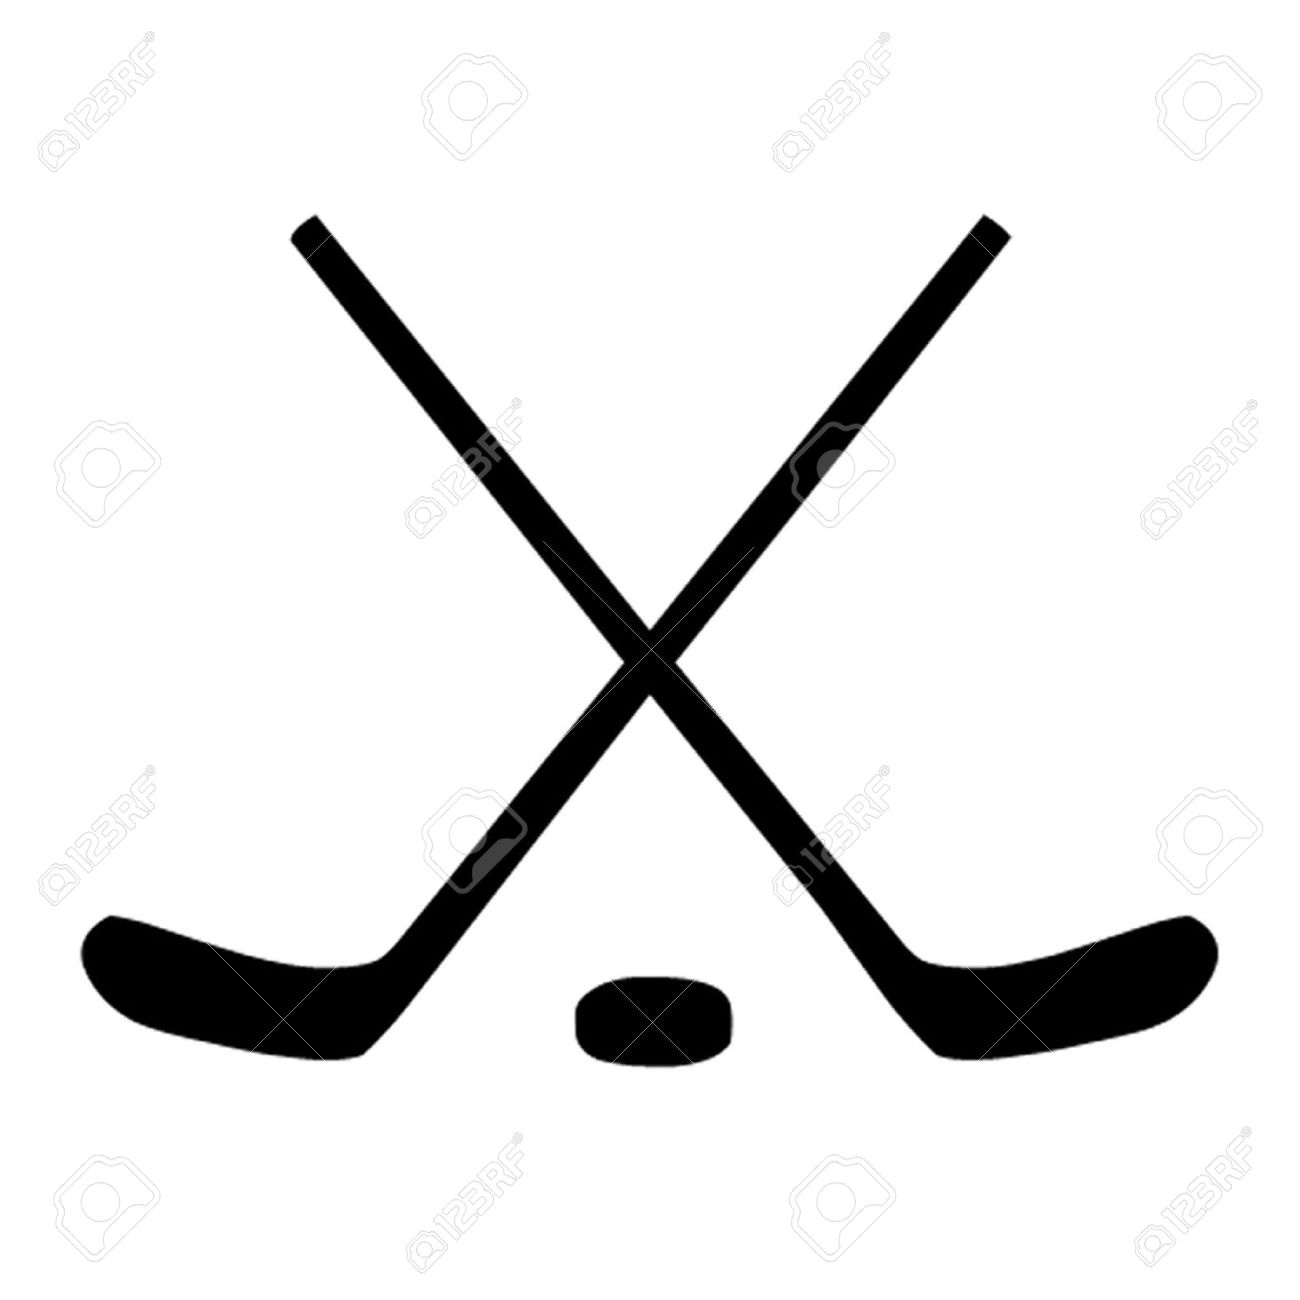 ice hockey sticks and puck royalty free cliparts vectors and stock rh 123rf com hockey stick clipart hockey sticks clipart free